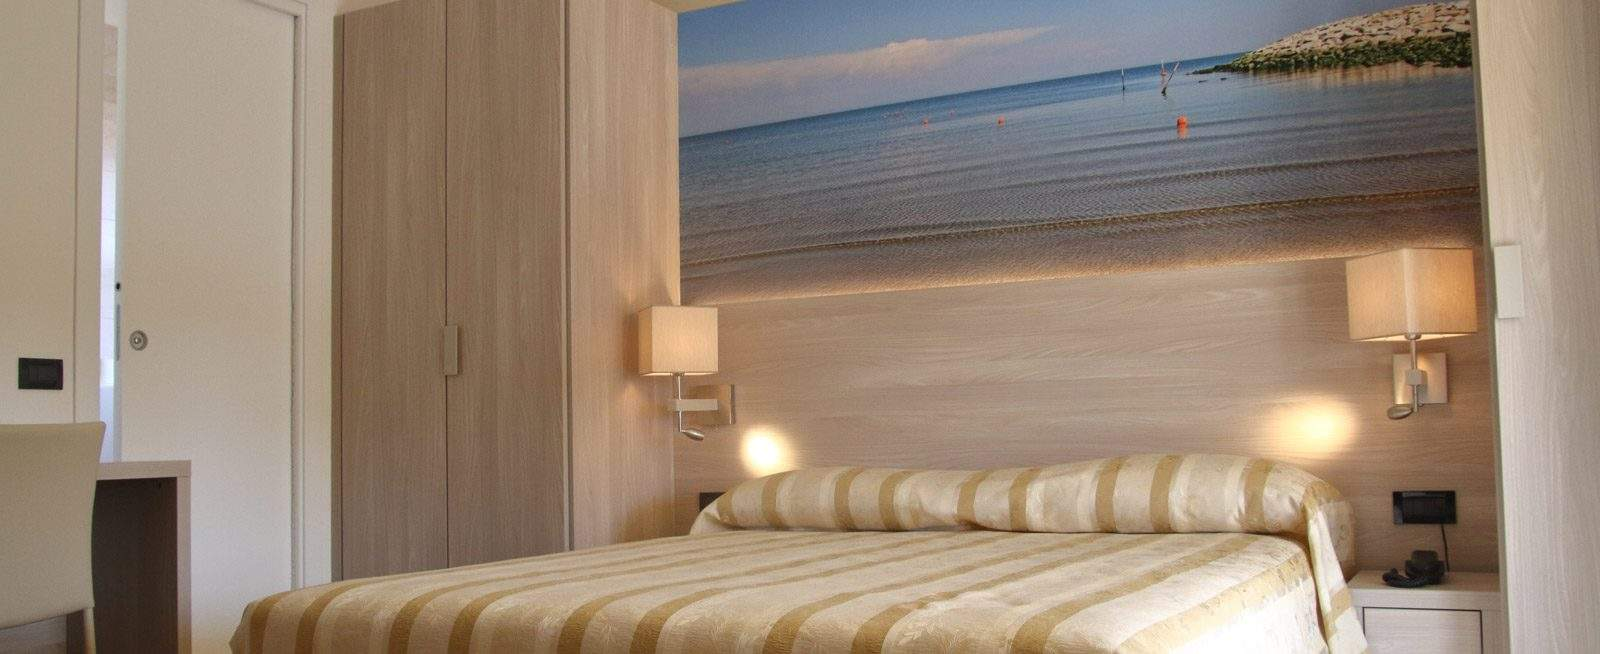 Hotel Angelo Caorle -3 star Hotel- Official Website